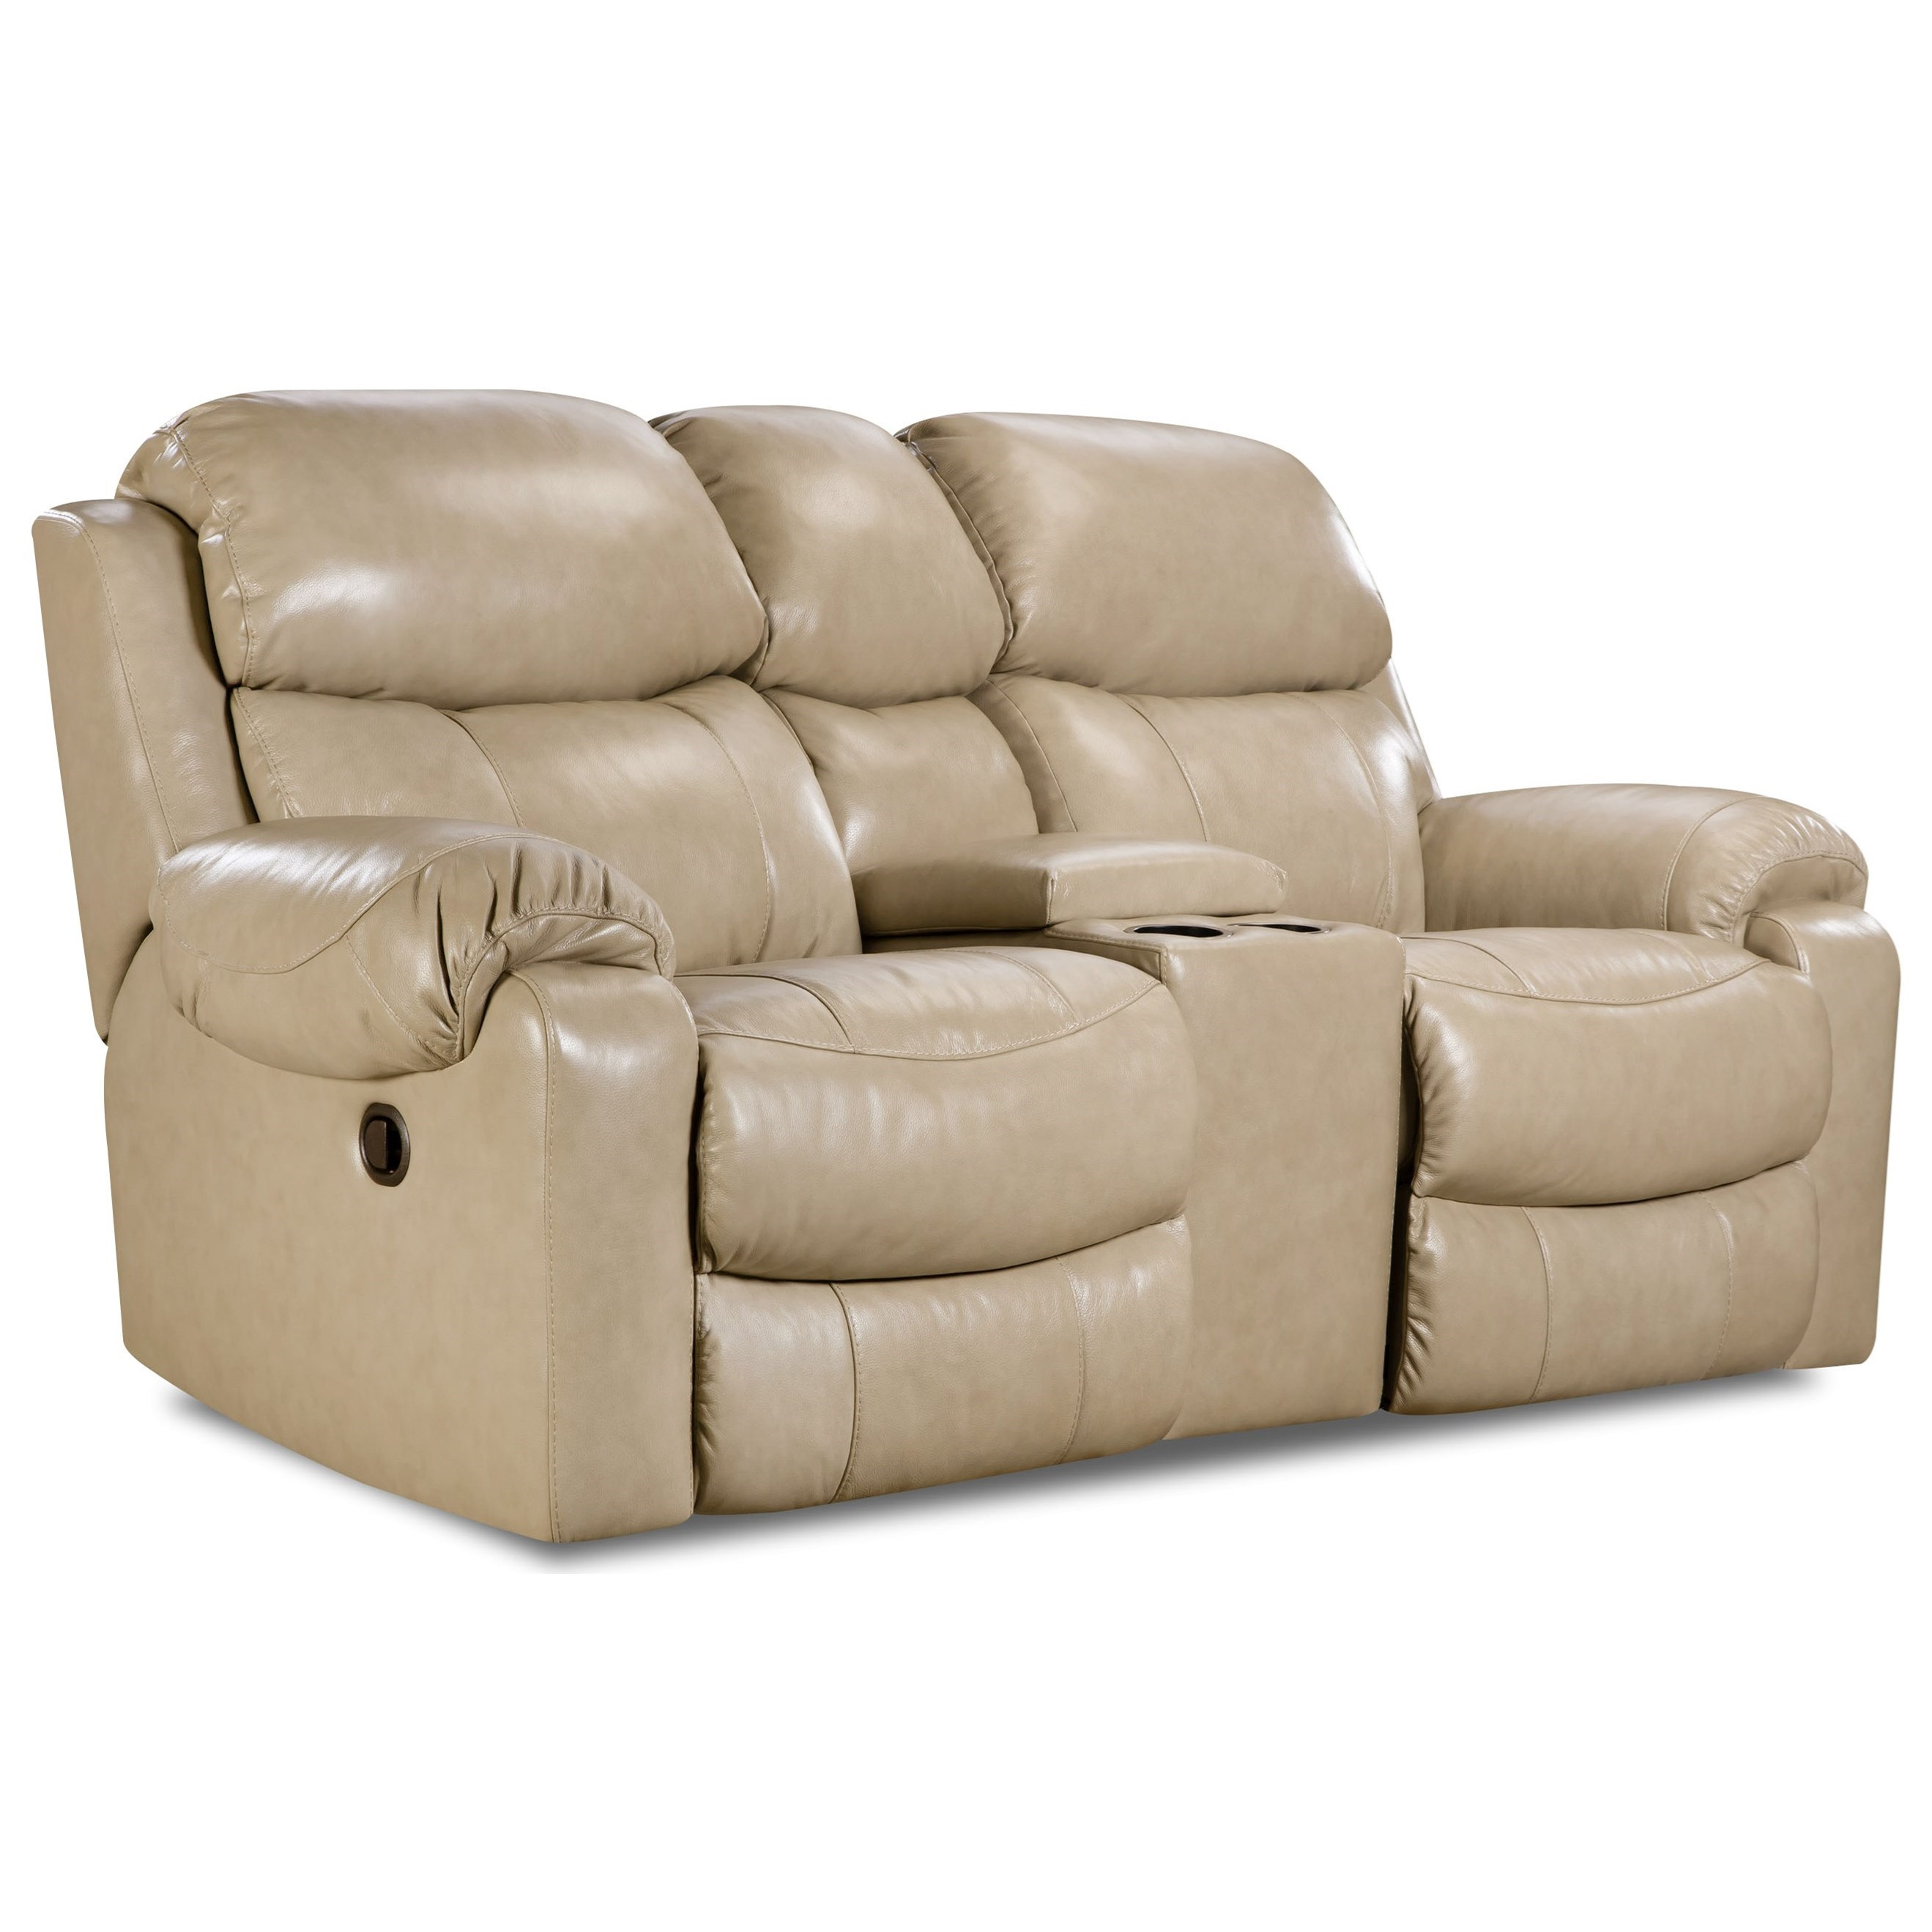 homestretch 135 collection power reclining loveseat with center console vandrie home. Black Bedroom Furniture Sets. Home Design Ideas